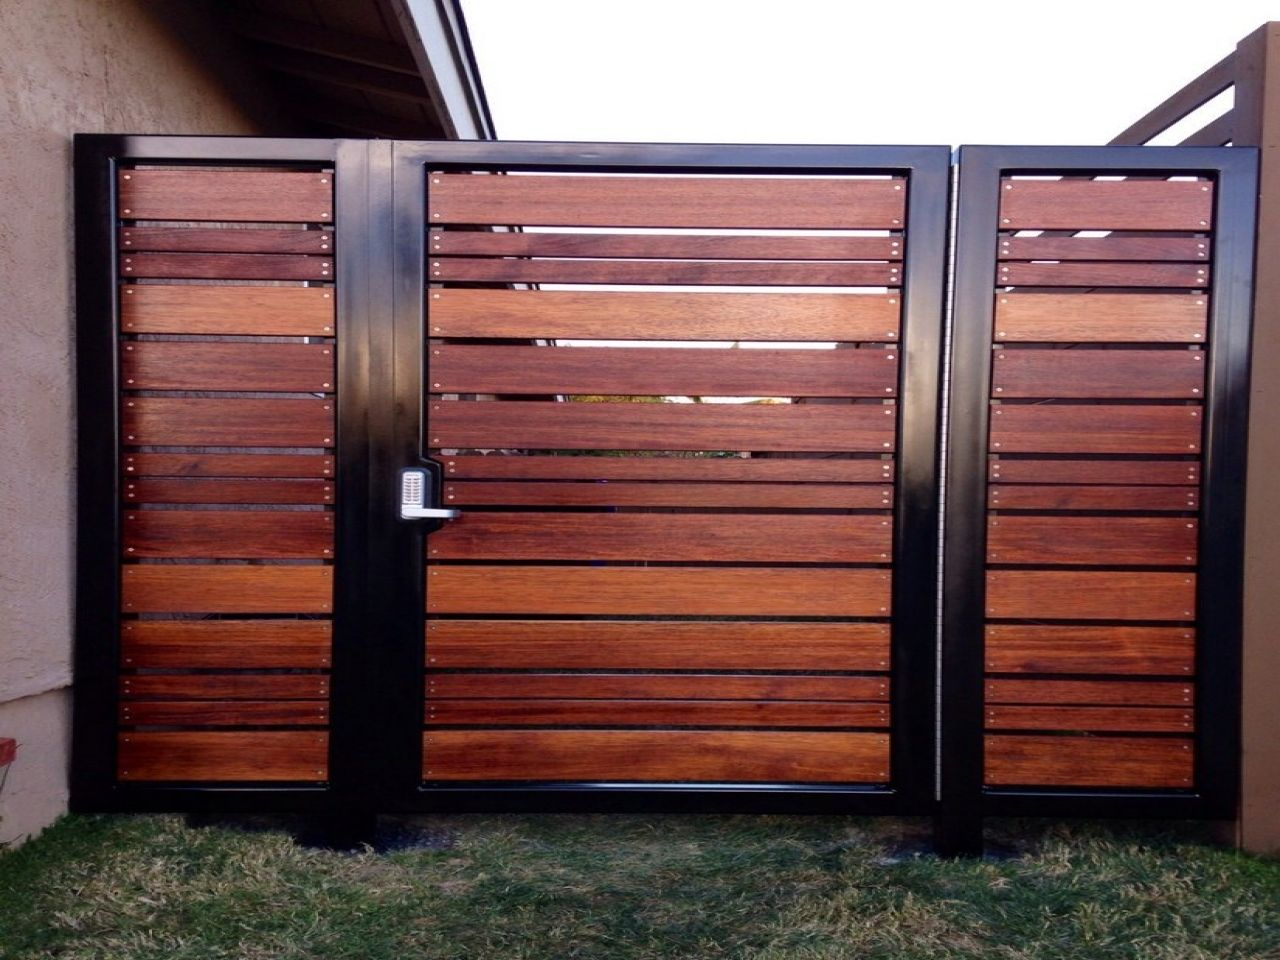 Image Result For Fence Wood Slat Horizontal Oriental Patio Fence